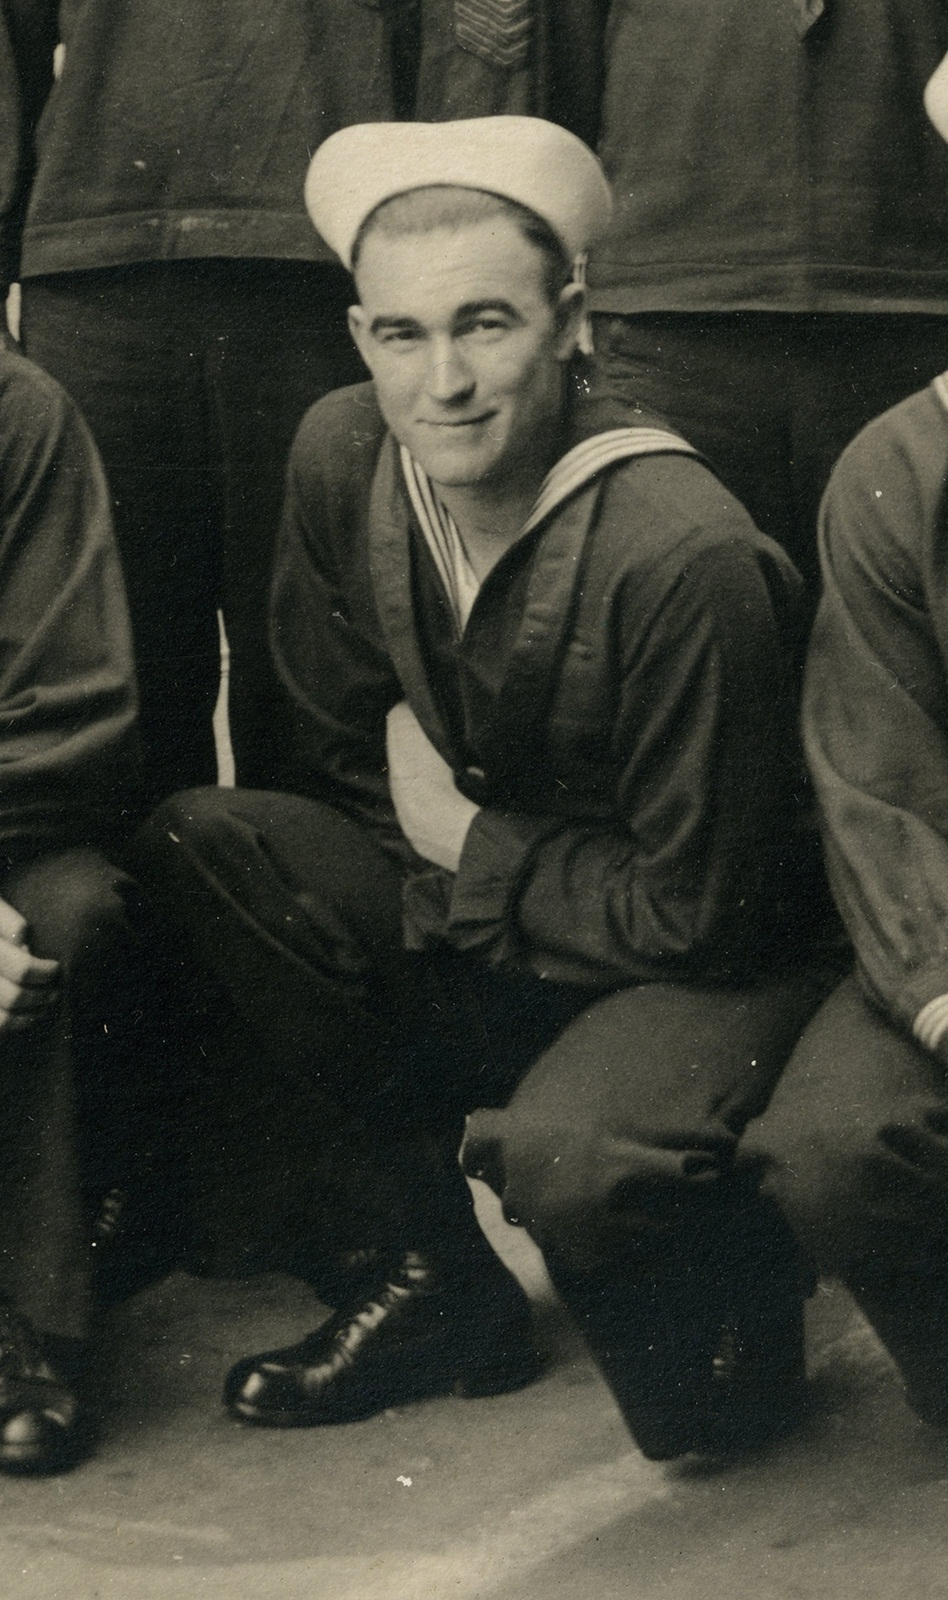 Joe Price in his Navy uniform.